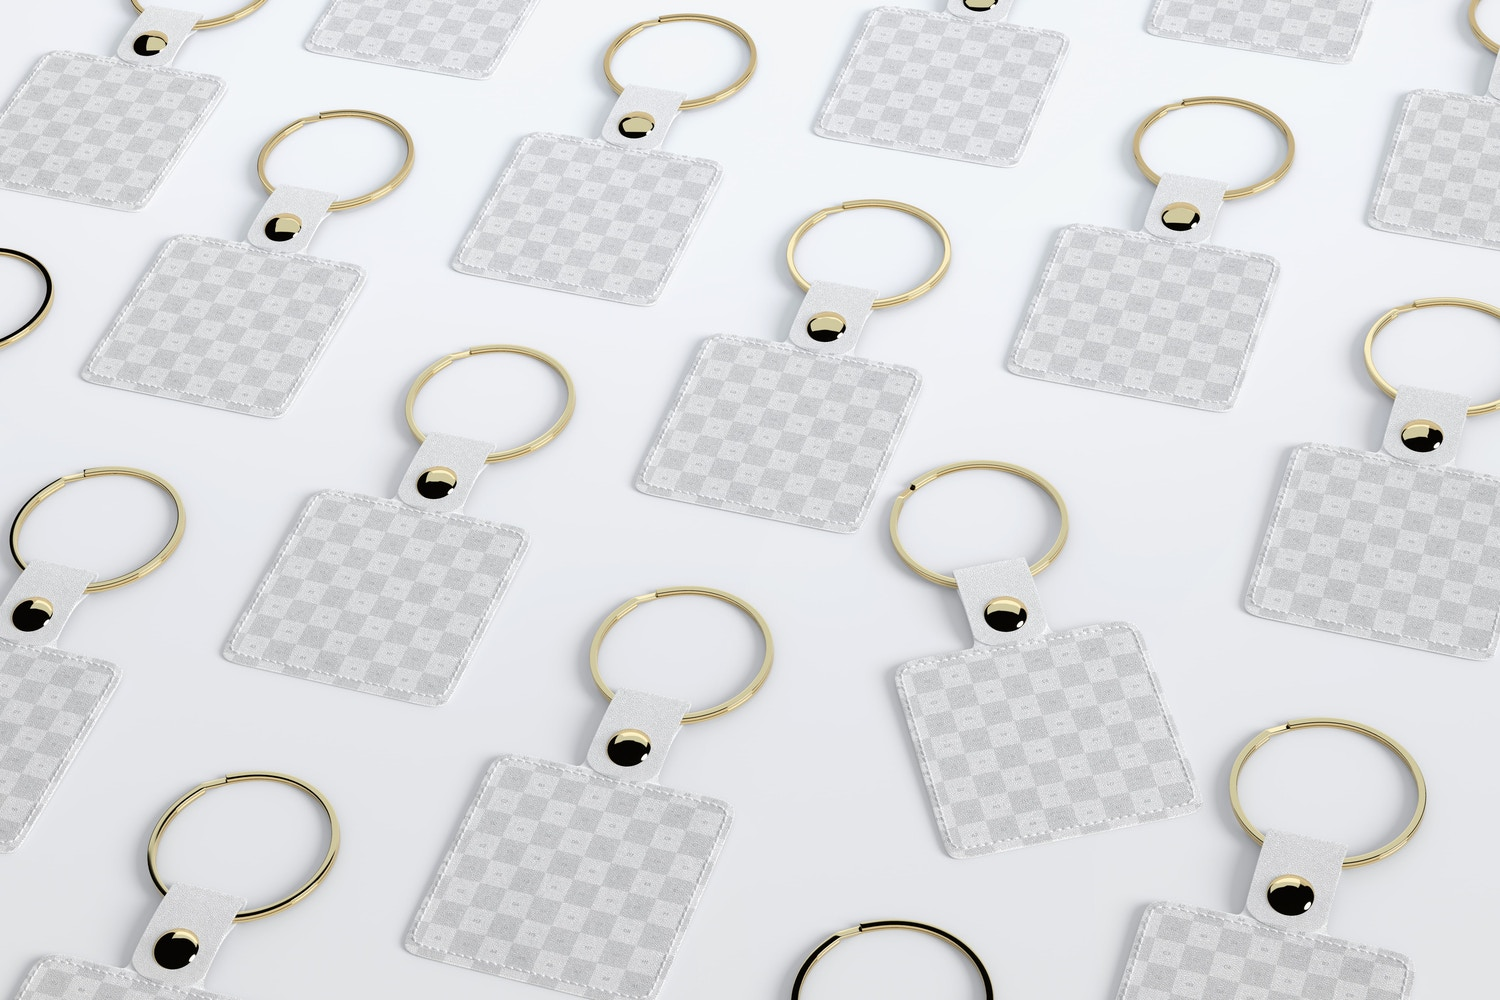 With this model, you can show the front and back view of your keychain designs.